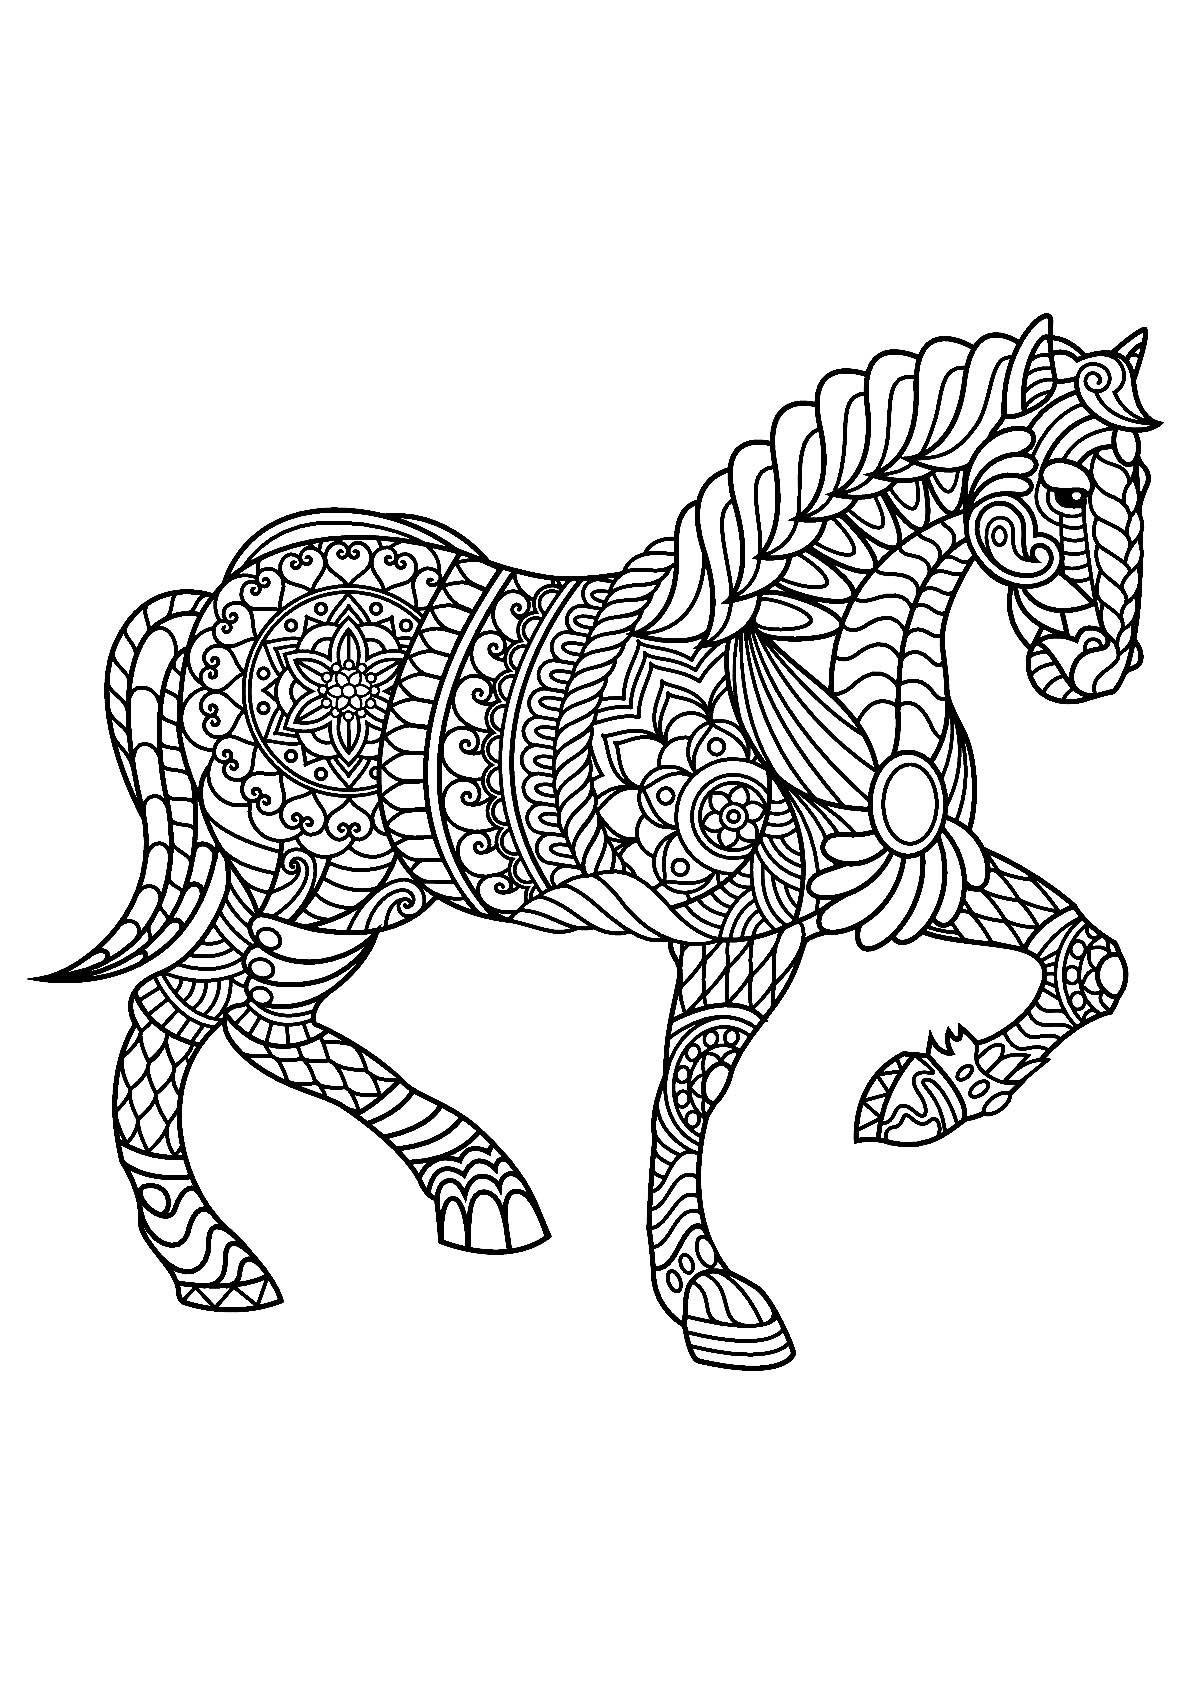 kids horse coloring pages horse with patterns free to color for children horses pages horse kids coloring